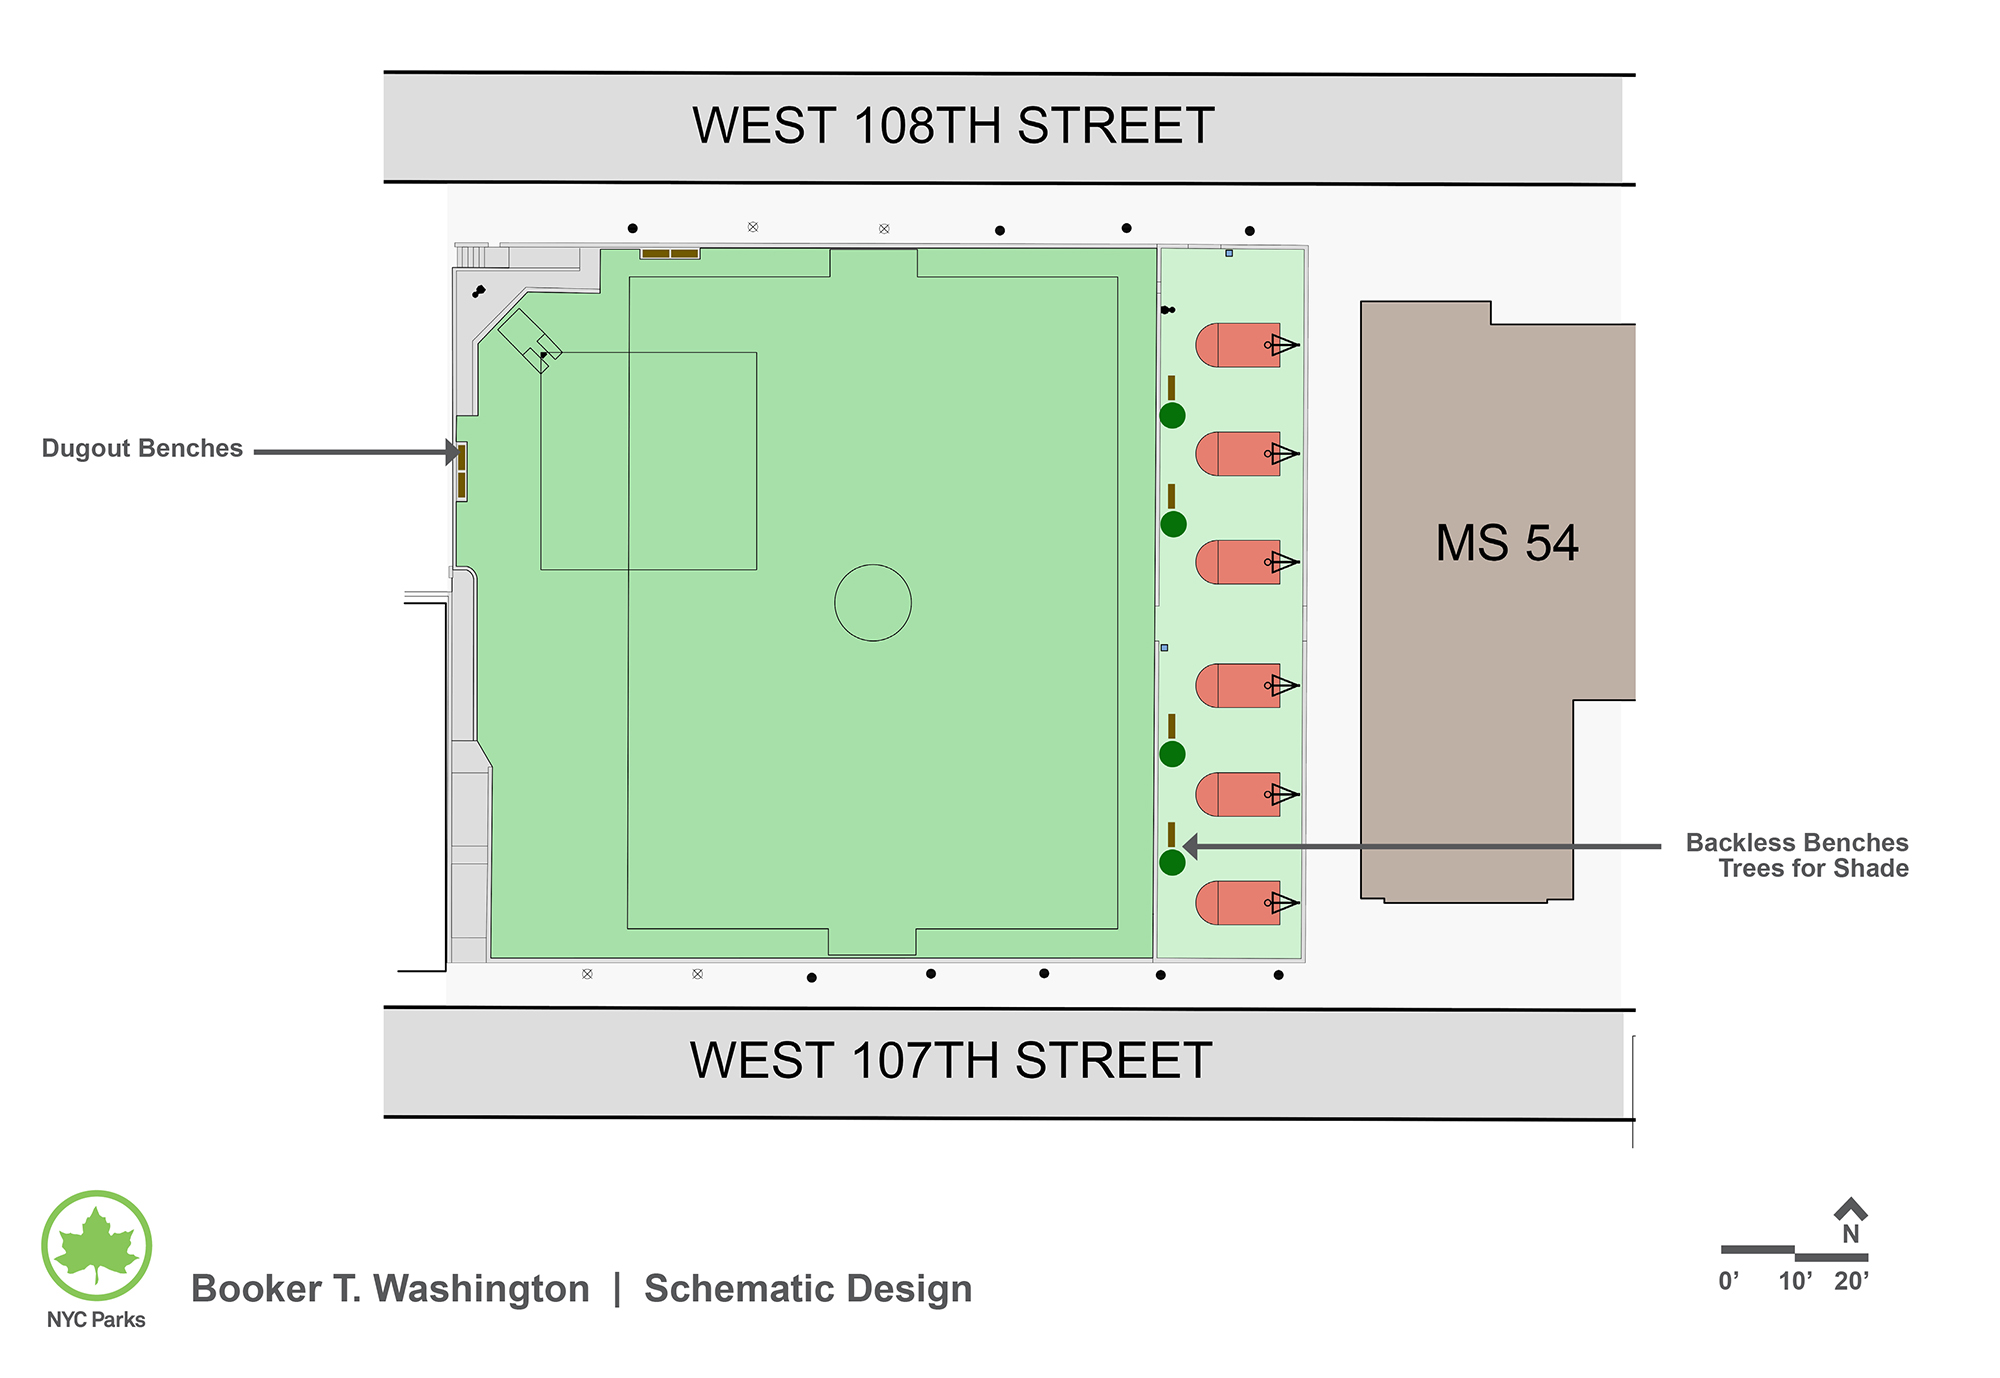 Design of Booker T. Washington Playground Synthetic Turf Reconstruction